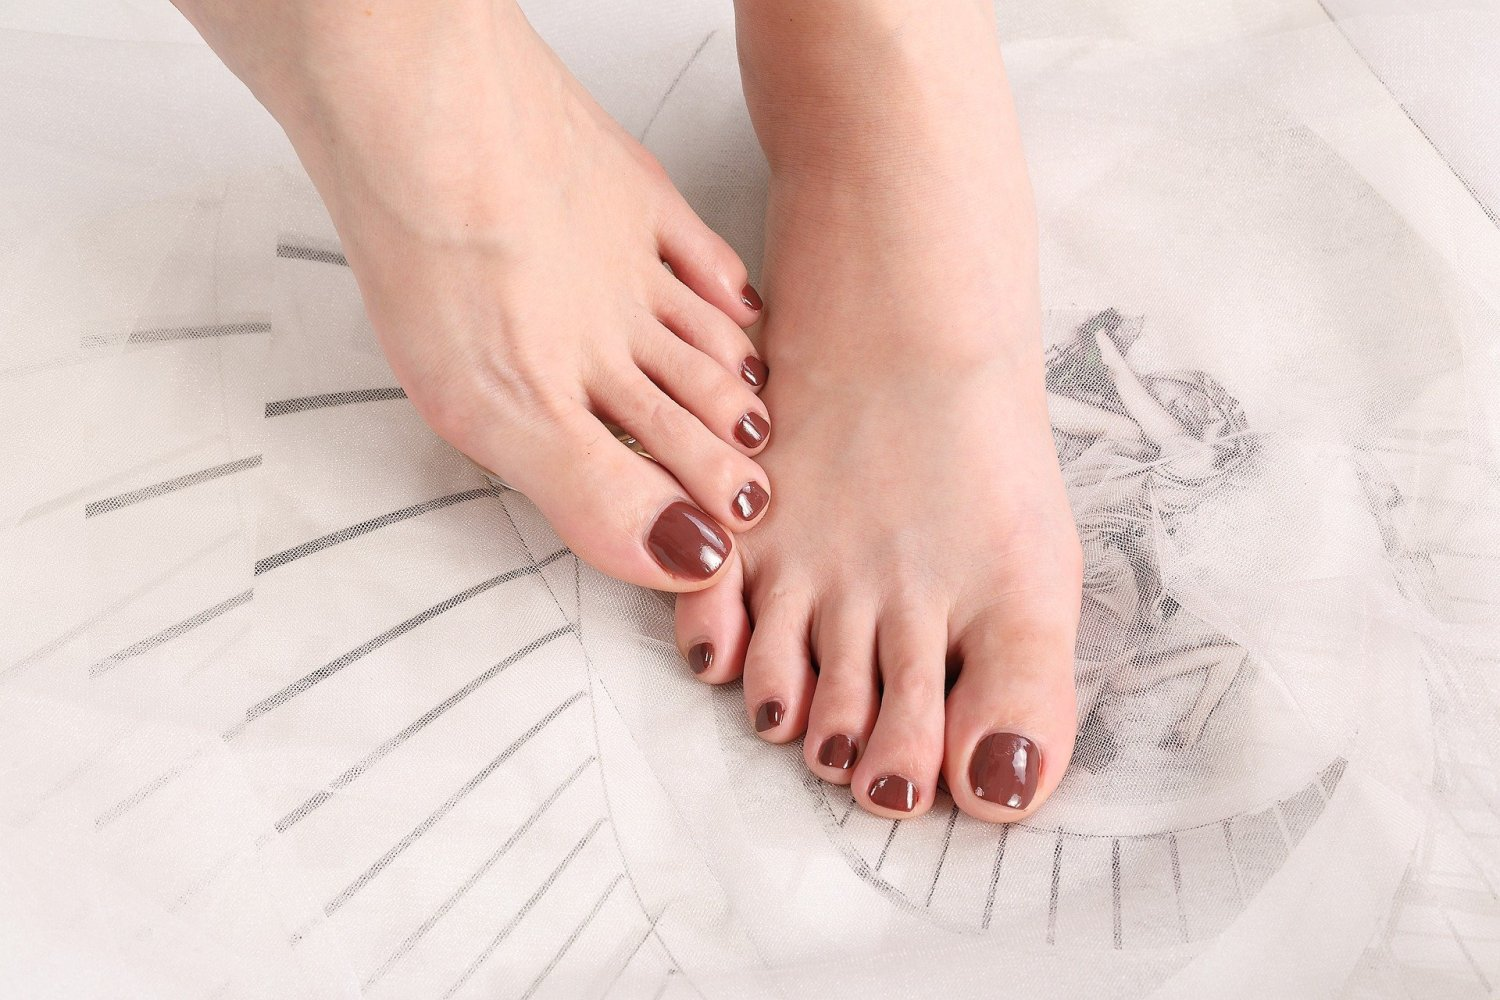 toenails falling off: what to do, common causes, and concerns